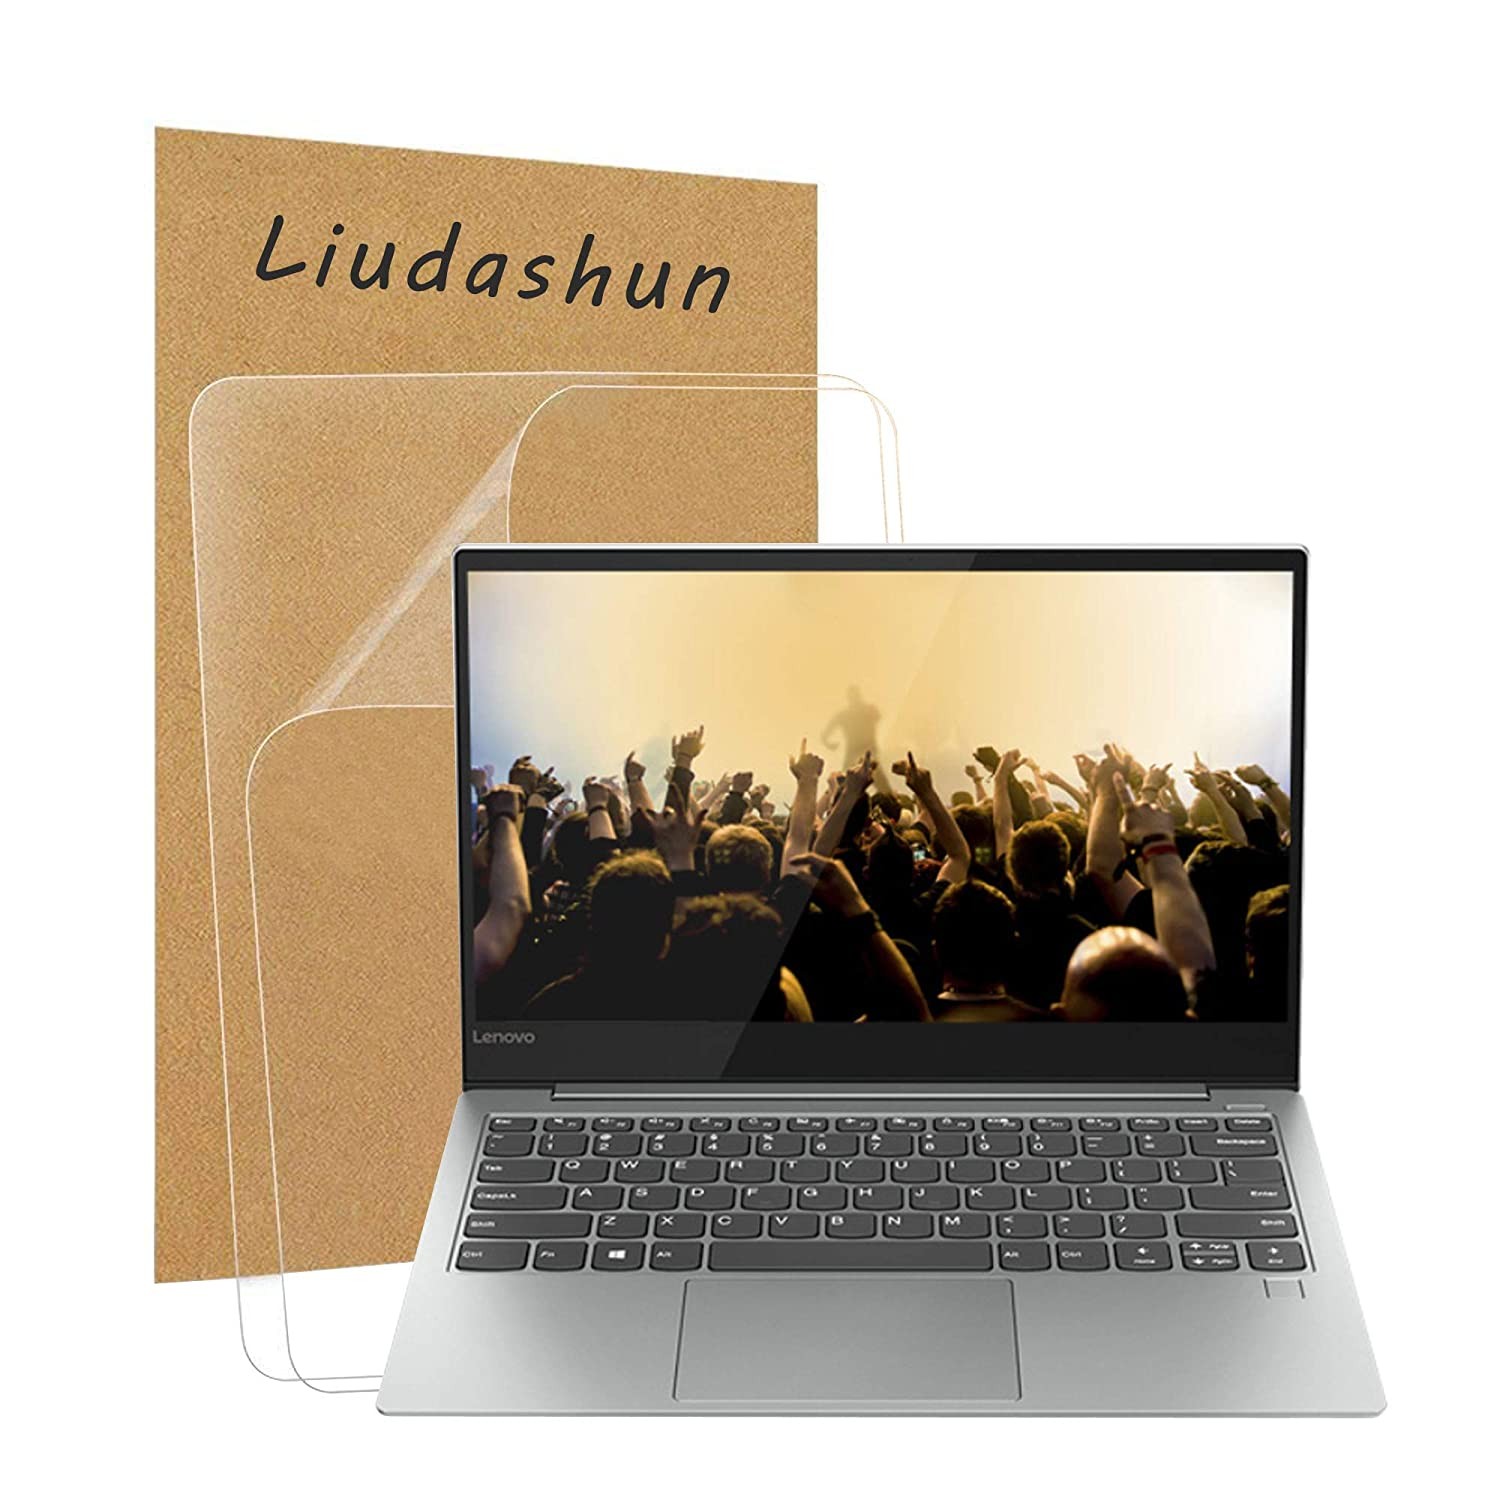 Amazon.com: Liudashun Screen Protector for Lenovo Yoga S730 ...